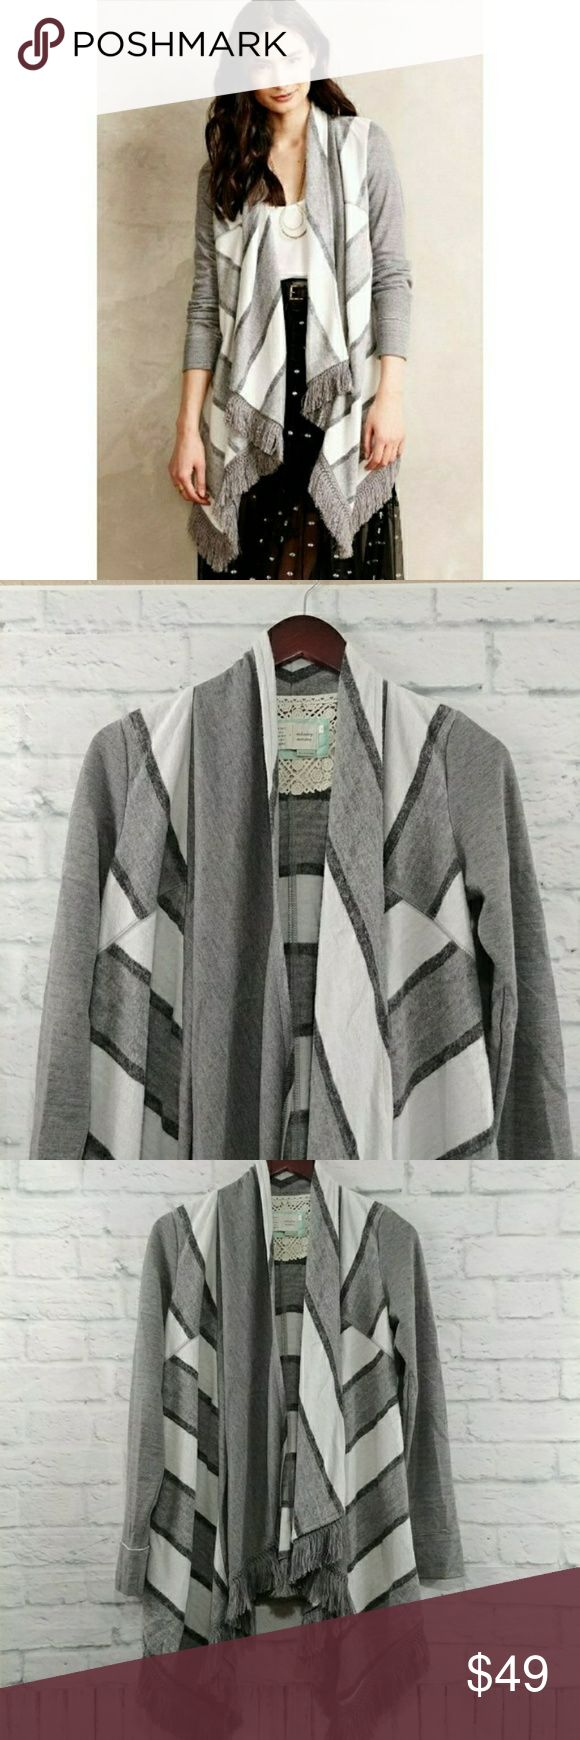 Anthropologie Elise Blanket Cardigan Gray XS Anthropologie Saturday Sunday Elise Blanket Cradigan in gray. Great Pre Owned - shows some signs of wear normal with fleece area. Super warm & perfect for Fall/Winter.  Measurements taken laying flat for size XSmall Bust-17 Length- 26 down sides, 34 at longest Stretch-little 001024175083 Anthropologie Sweaters Cardigans